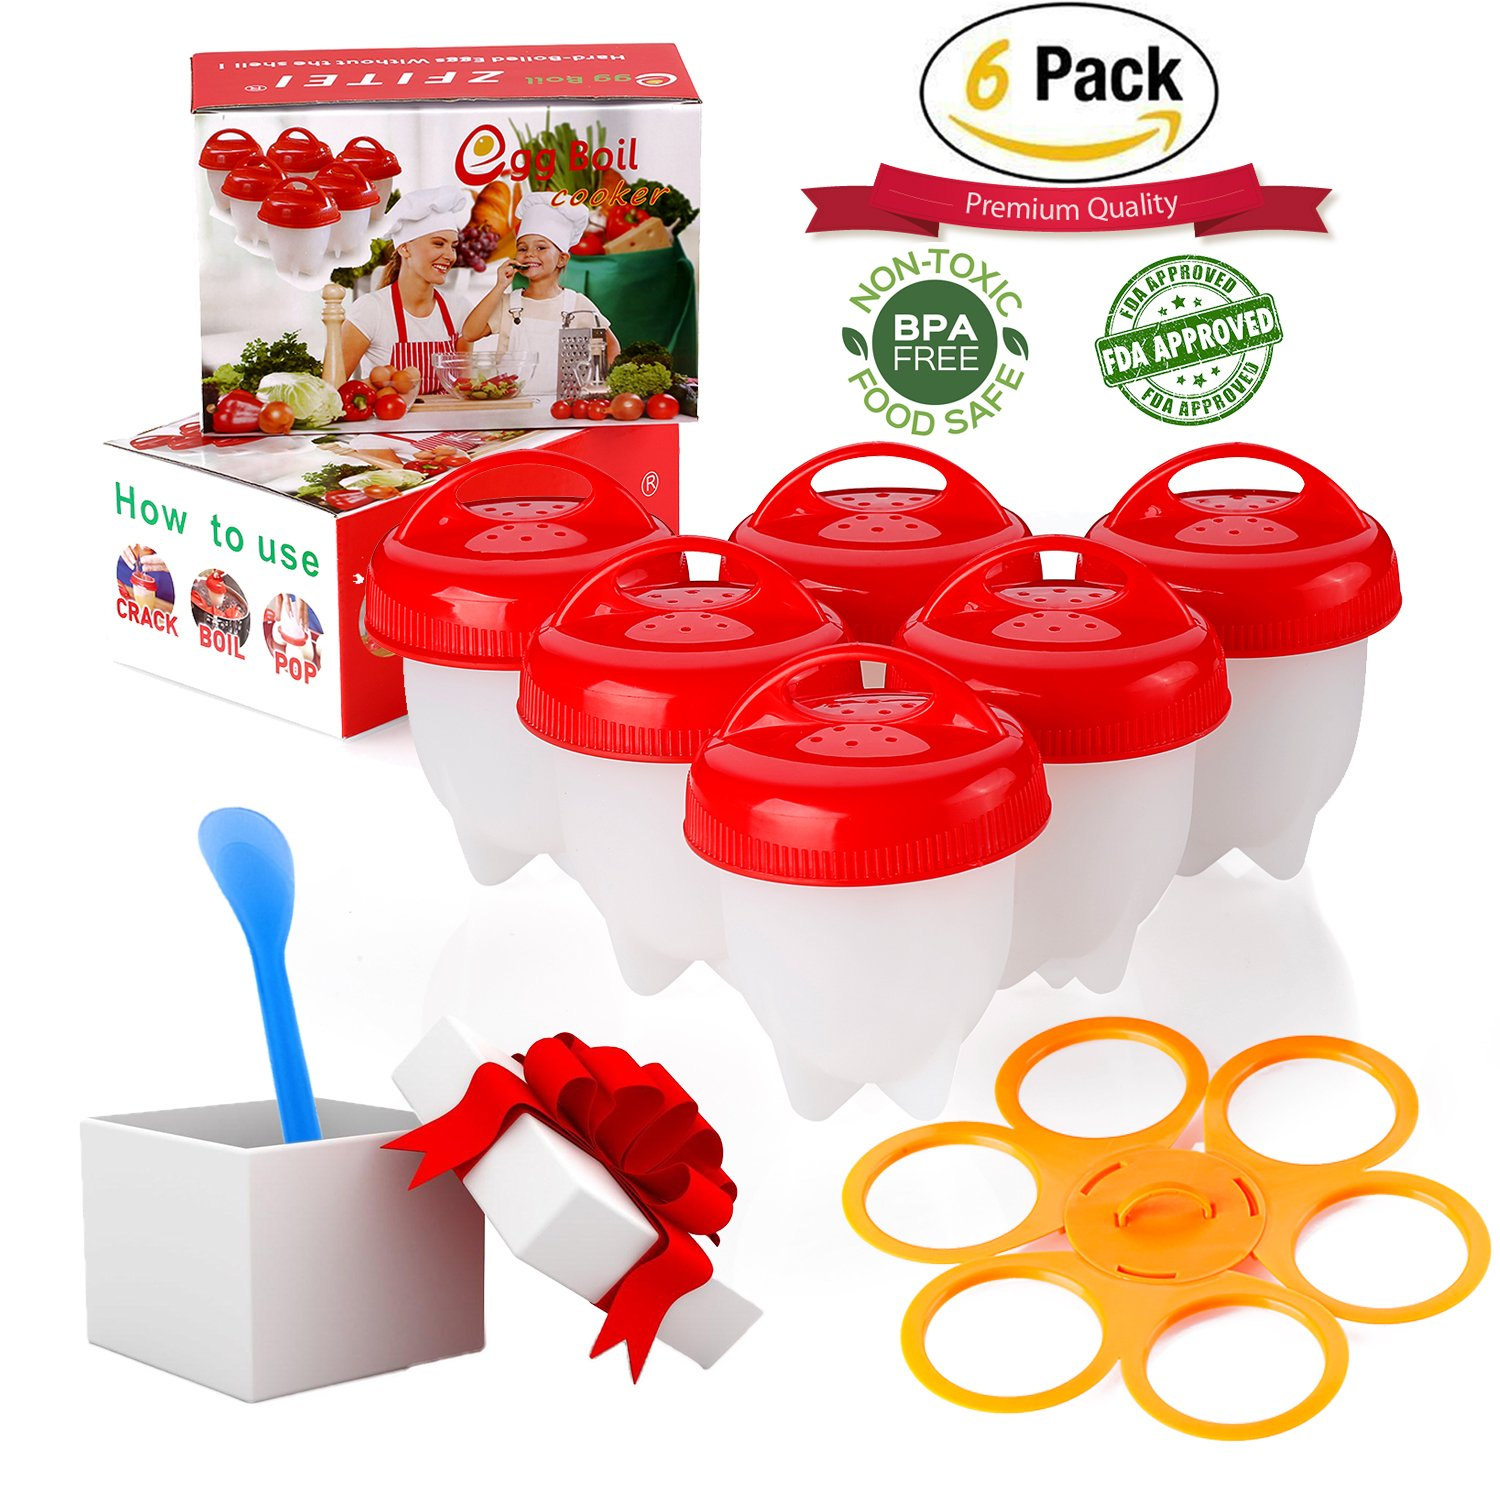 ZFITEI Upgrade Version Egg Cooker holder and Egg Cooker 6pack,Pls watch Real test video, Boiled Eggs No shell,hard&Soft Maker,BPA Free,Non Stick Silicone,Apply to Poacher, Boiled, Steamer,by